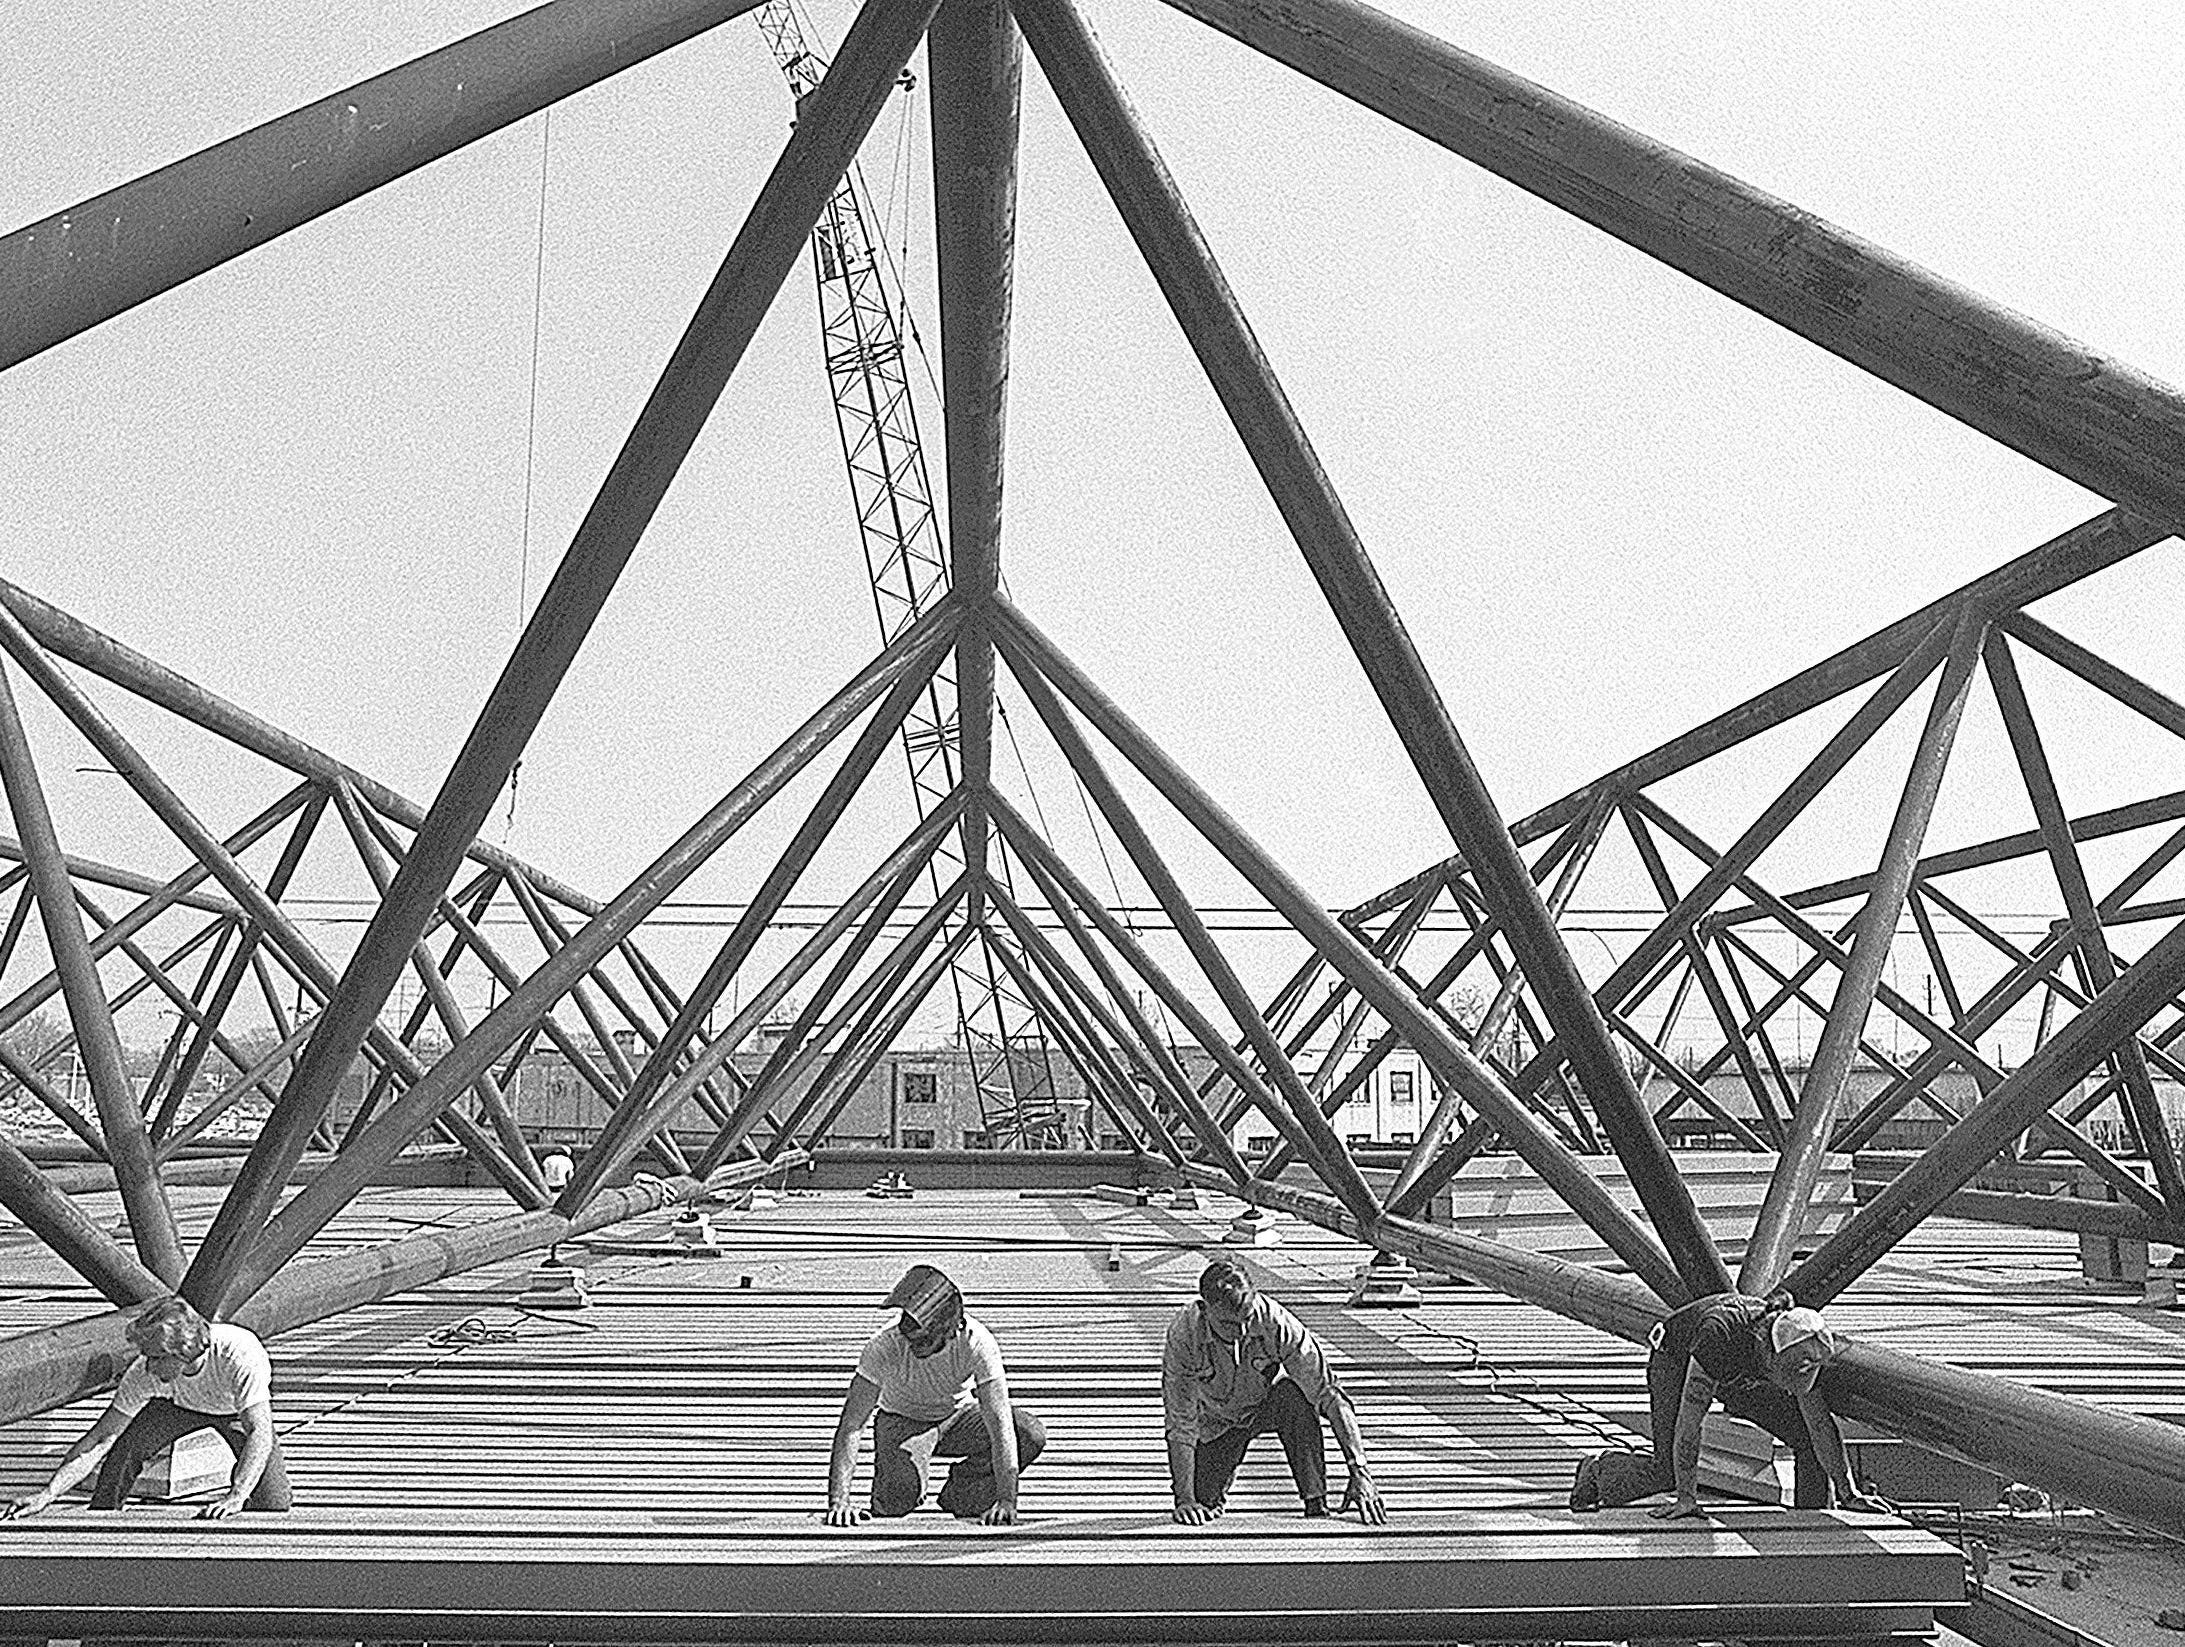 Workmen put the roof-ceiling on Shelby State Community College's gymnasium at Linden and Walnut in March 1977. From Left are: Scoffer Anderson, Bobby Williams, Pete Ashmore and Tony Spicer. They work for Metal Roof Decks, Inc. One building of the downtown campus has been in use for two years and four other structures were put into use the first of this year as other construction continued.